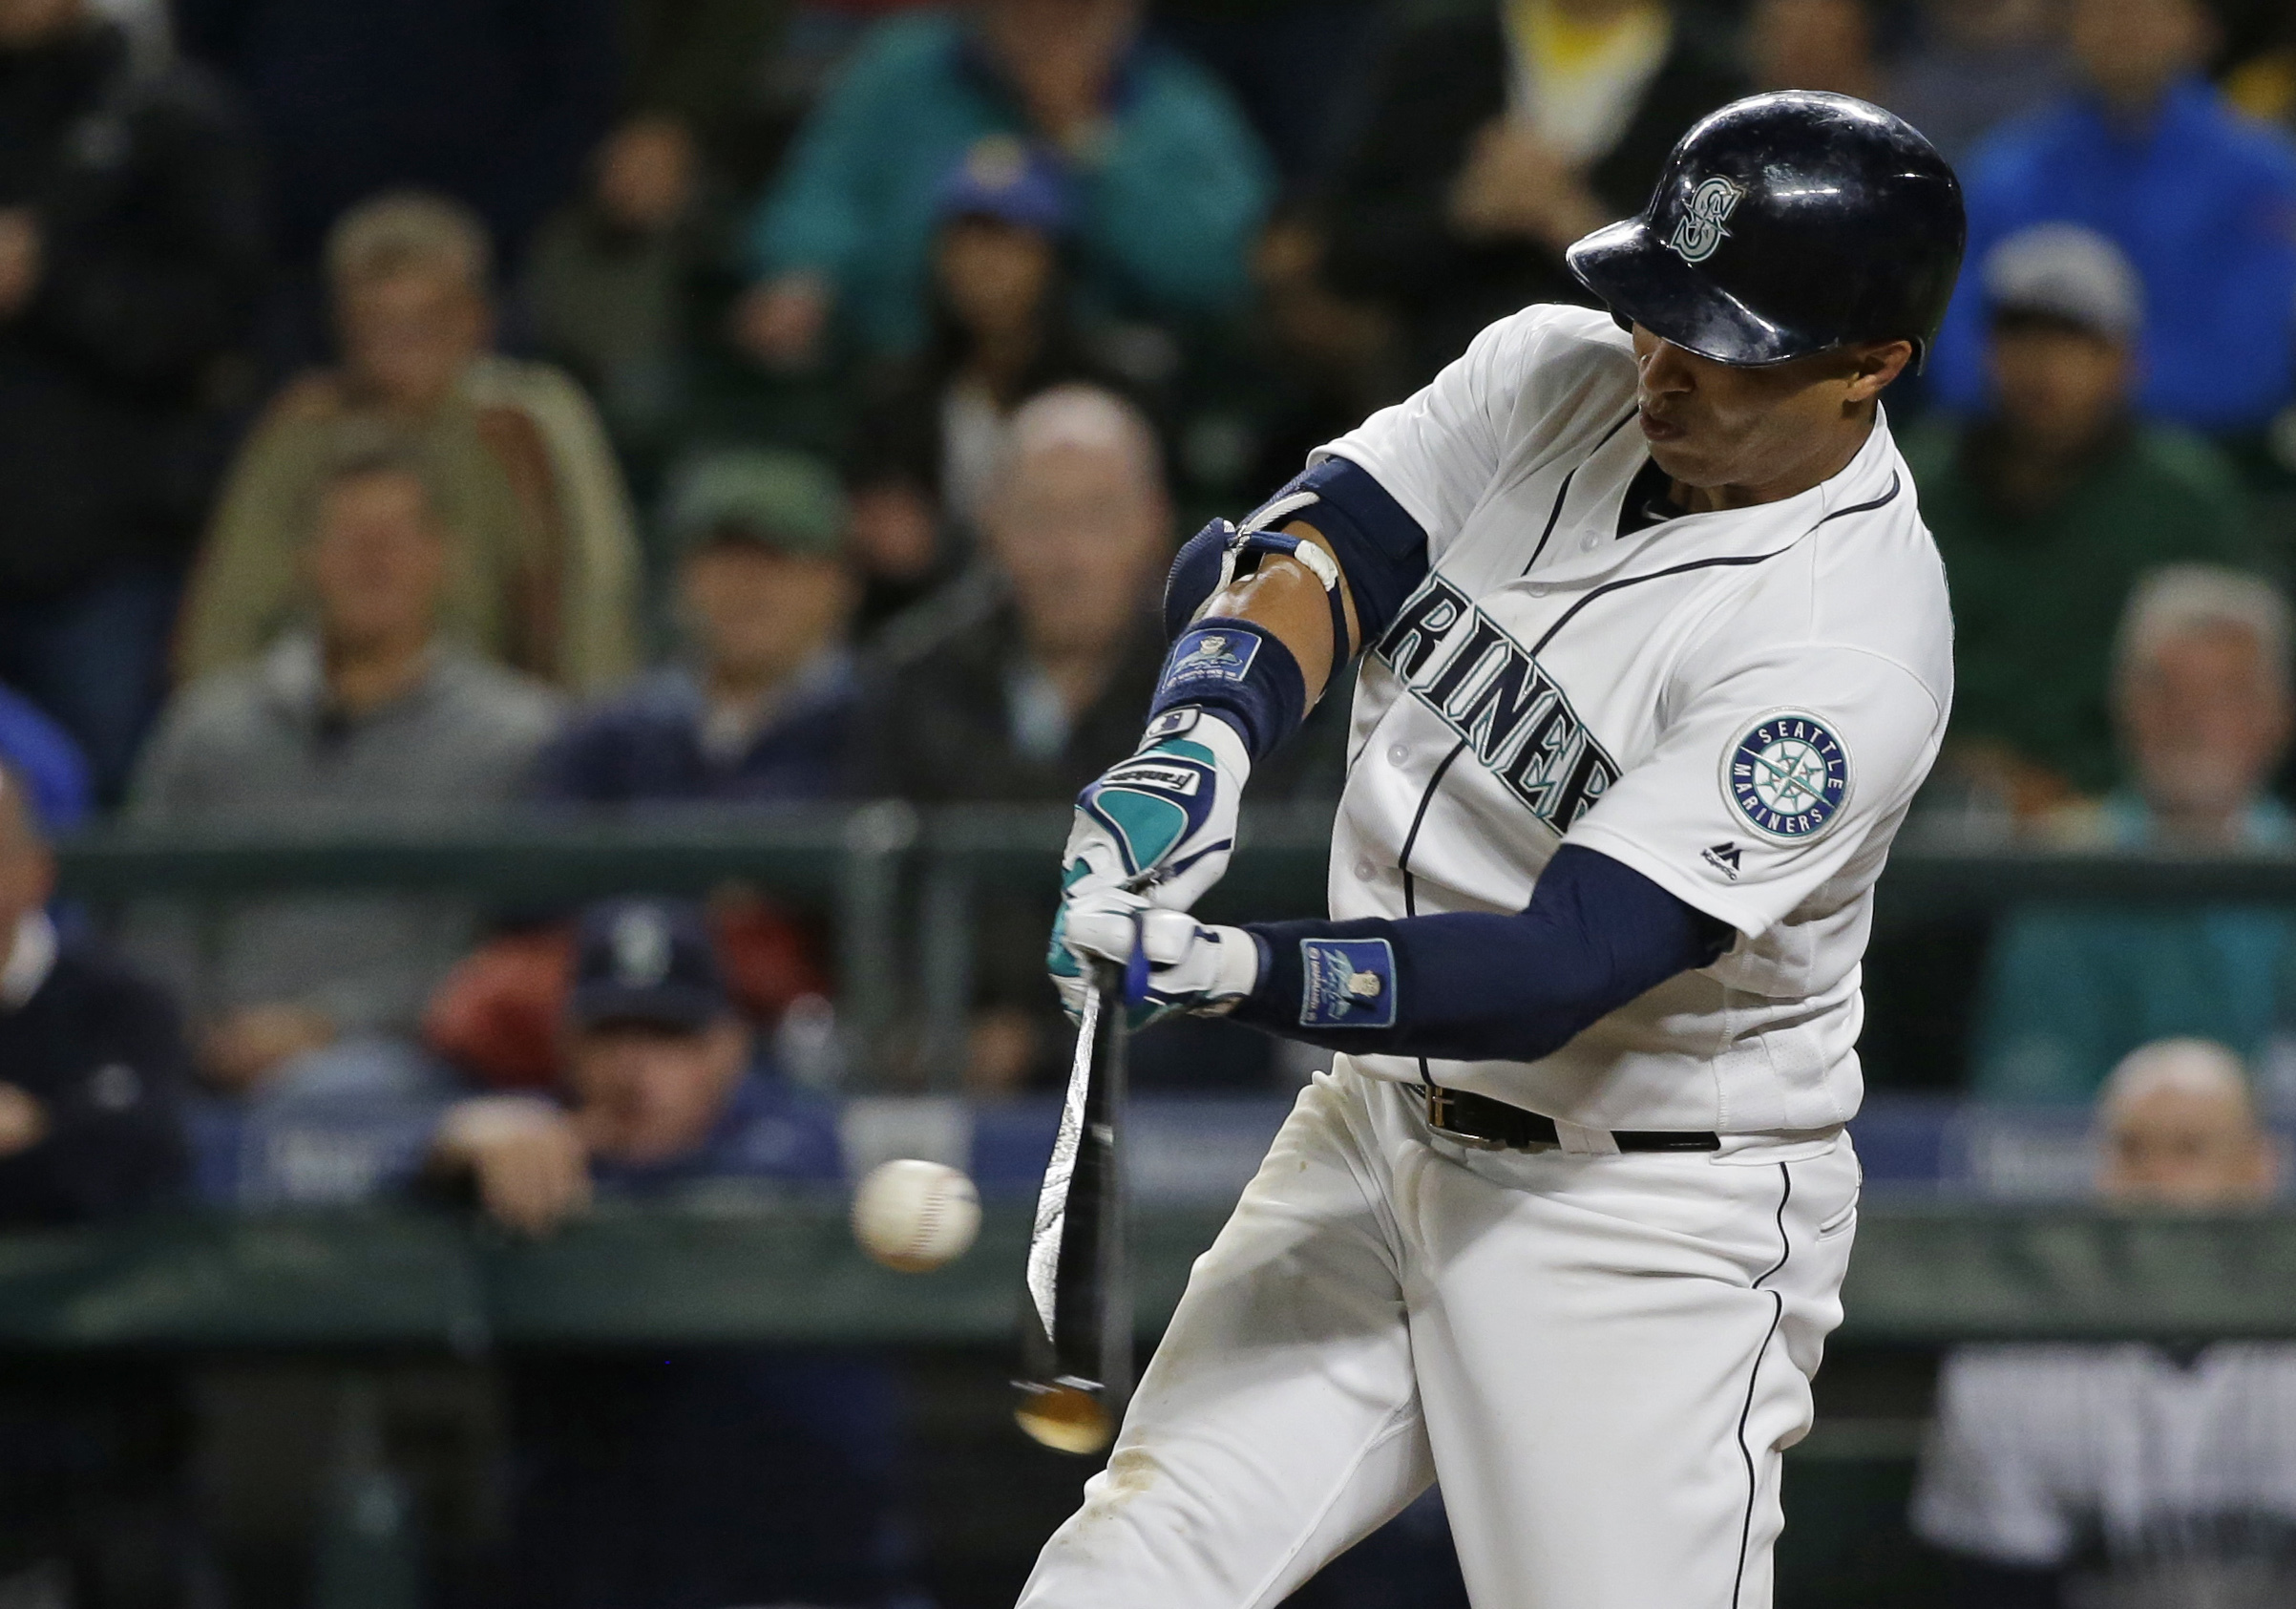 Seattle Mariners' Leonys Martin hits a two-run walk-off home run during the ninth inning of a baseball game against the Oakland Athletics, Tuesday, May 24, 2016, in Seattle. The Mariners won 6-5. (AP Photo/Ted S. Warren)